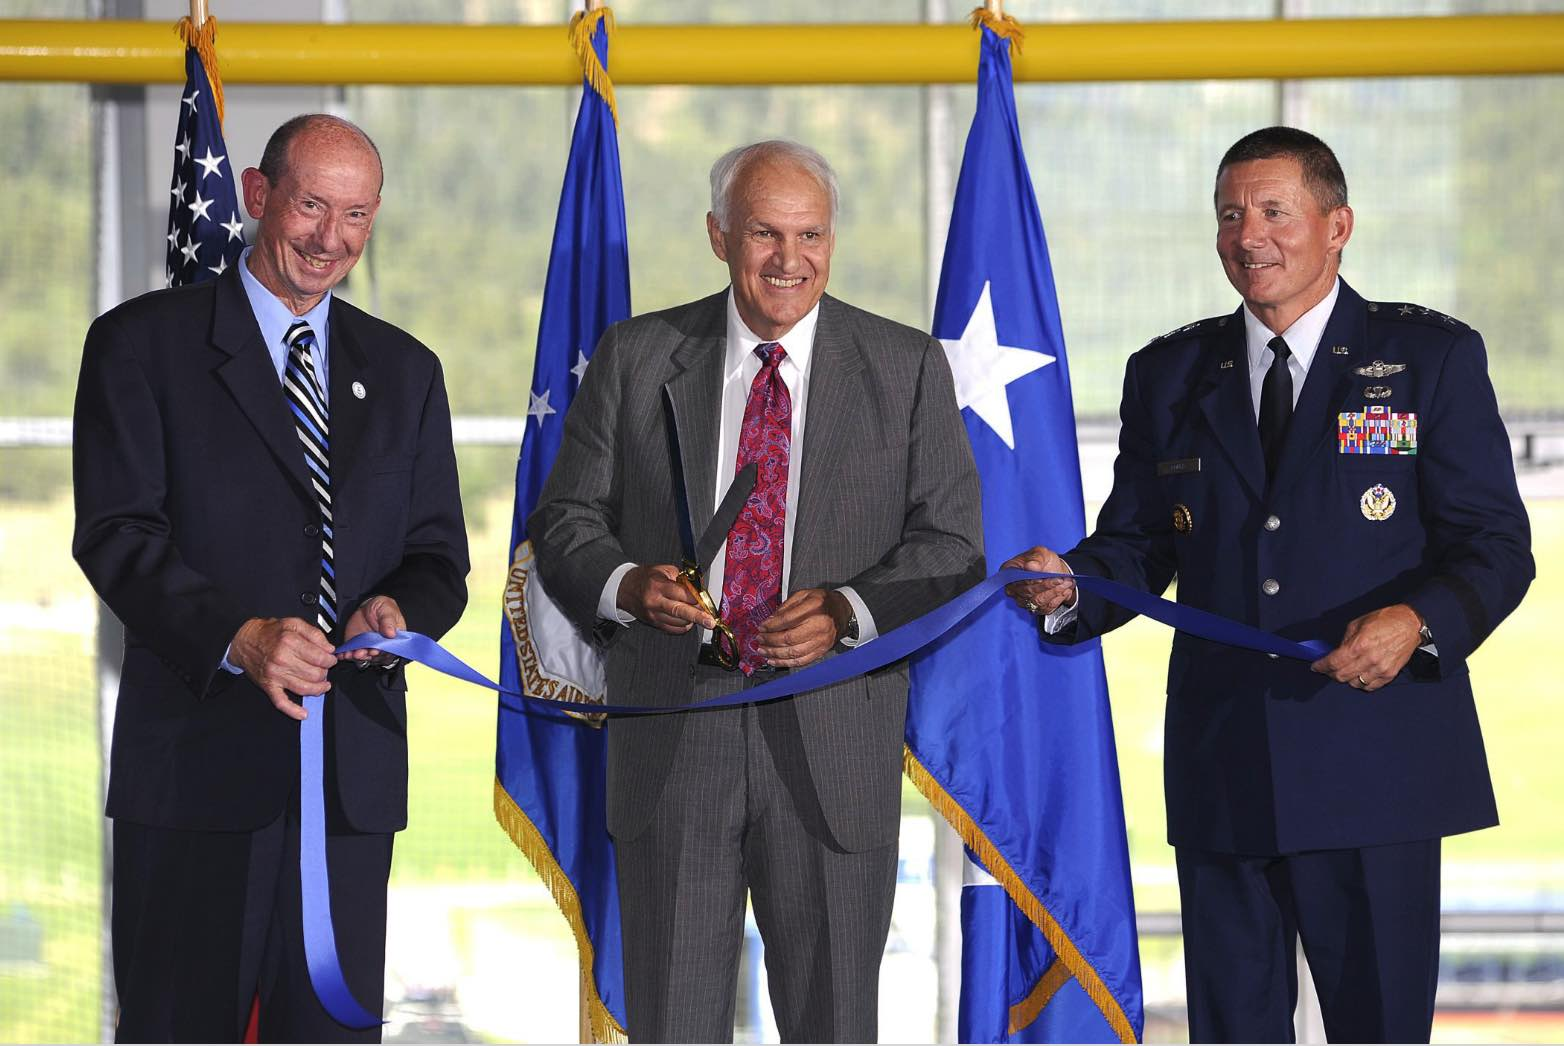 Ribbon cutting ceremony for the Holaday Athletic Center, Bart Holaday (center)